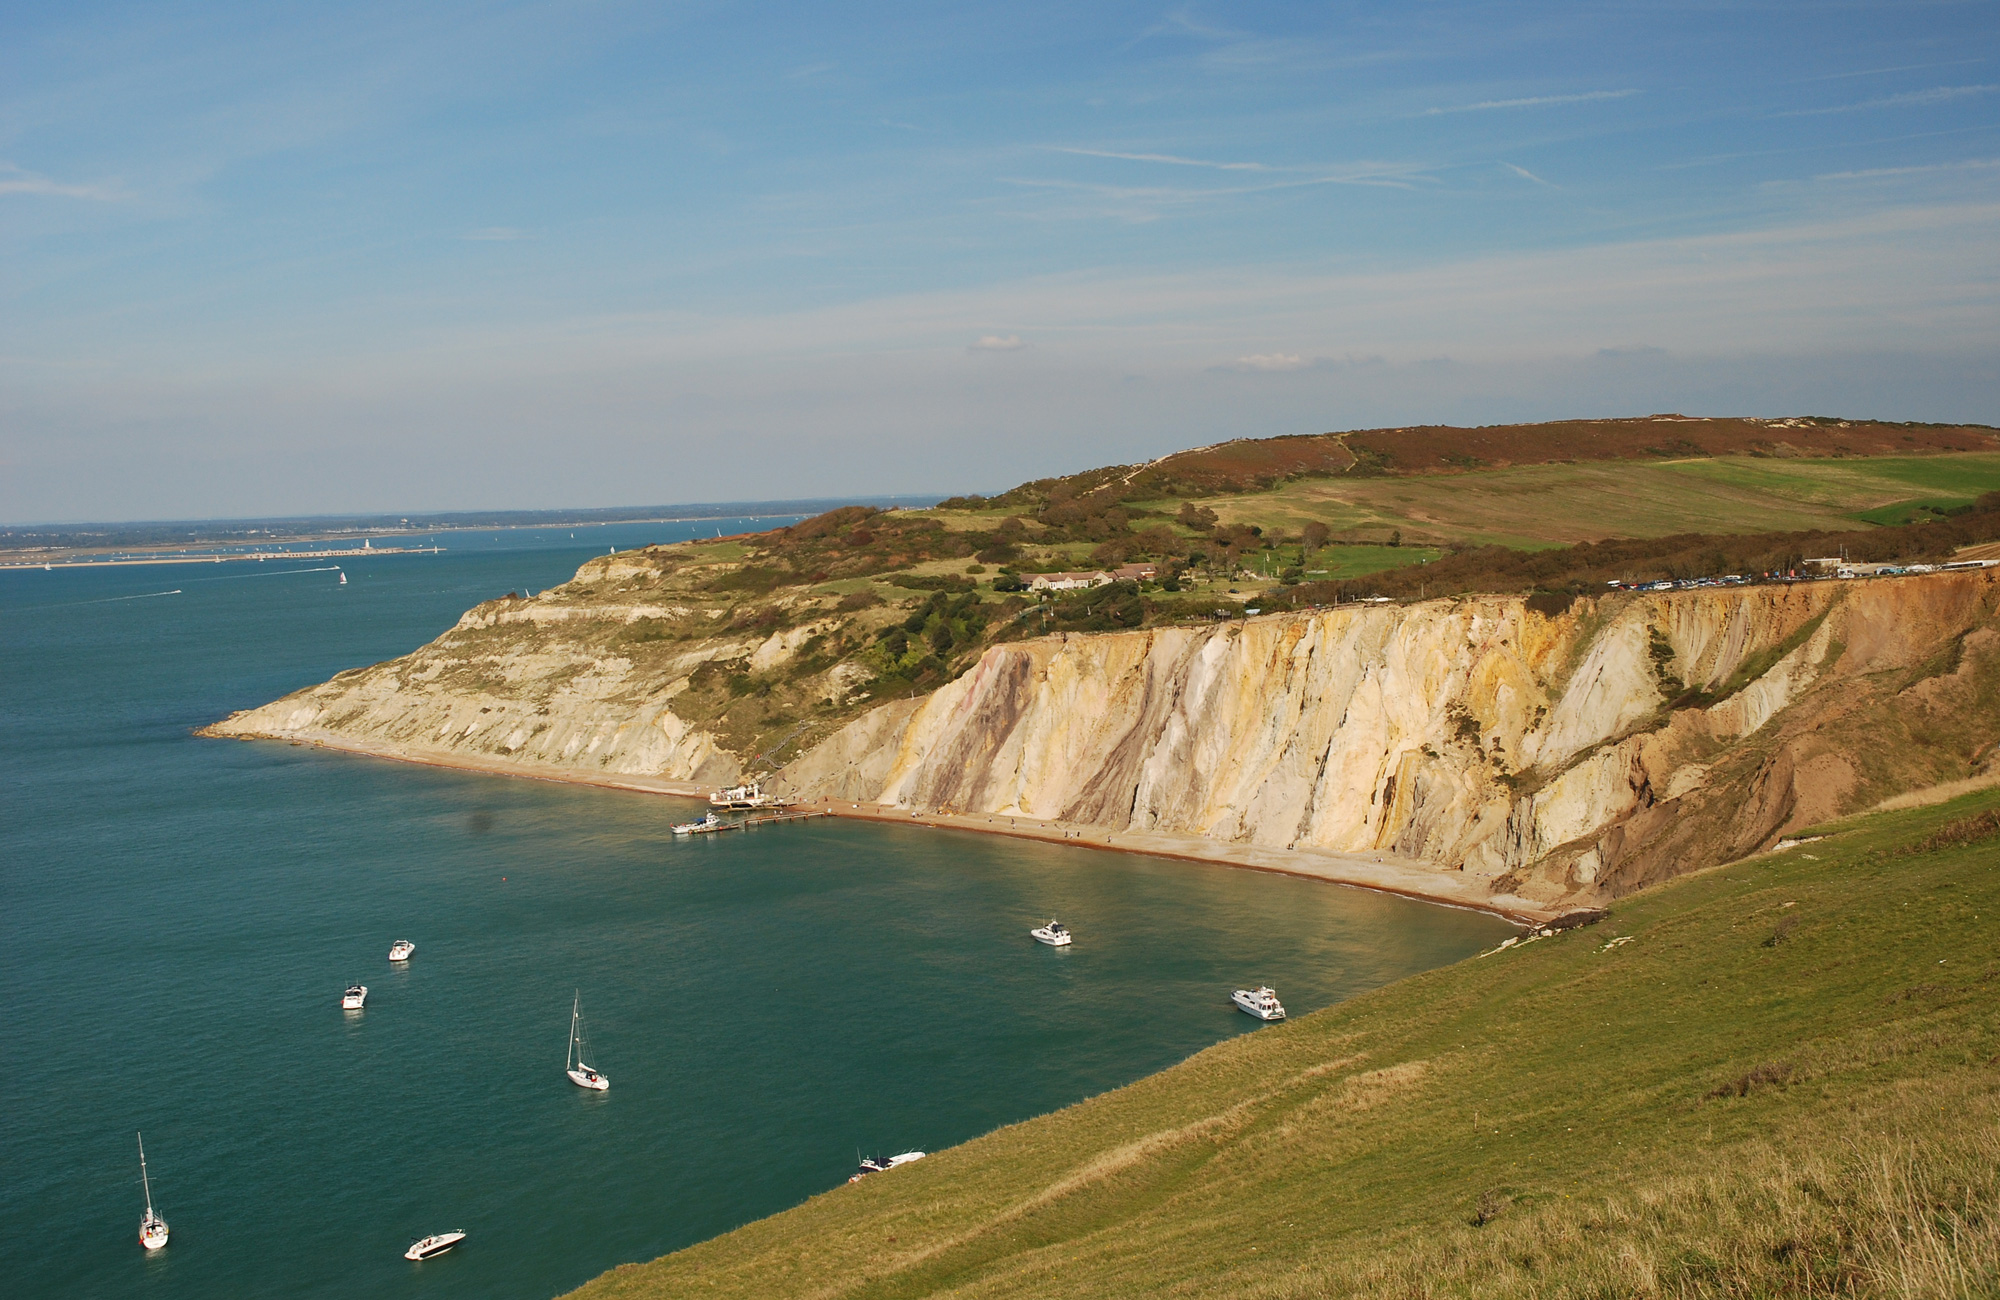 Save up to 60% on <span>Big Cottages In The Isle Of Wight | Over 30,000 Large UK Holiday Homes</span>